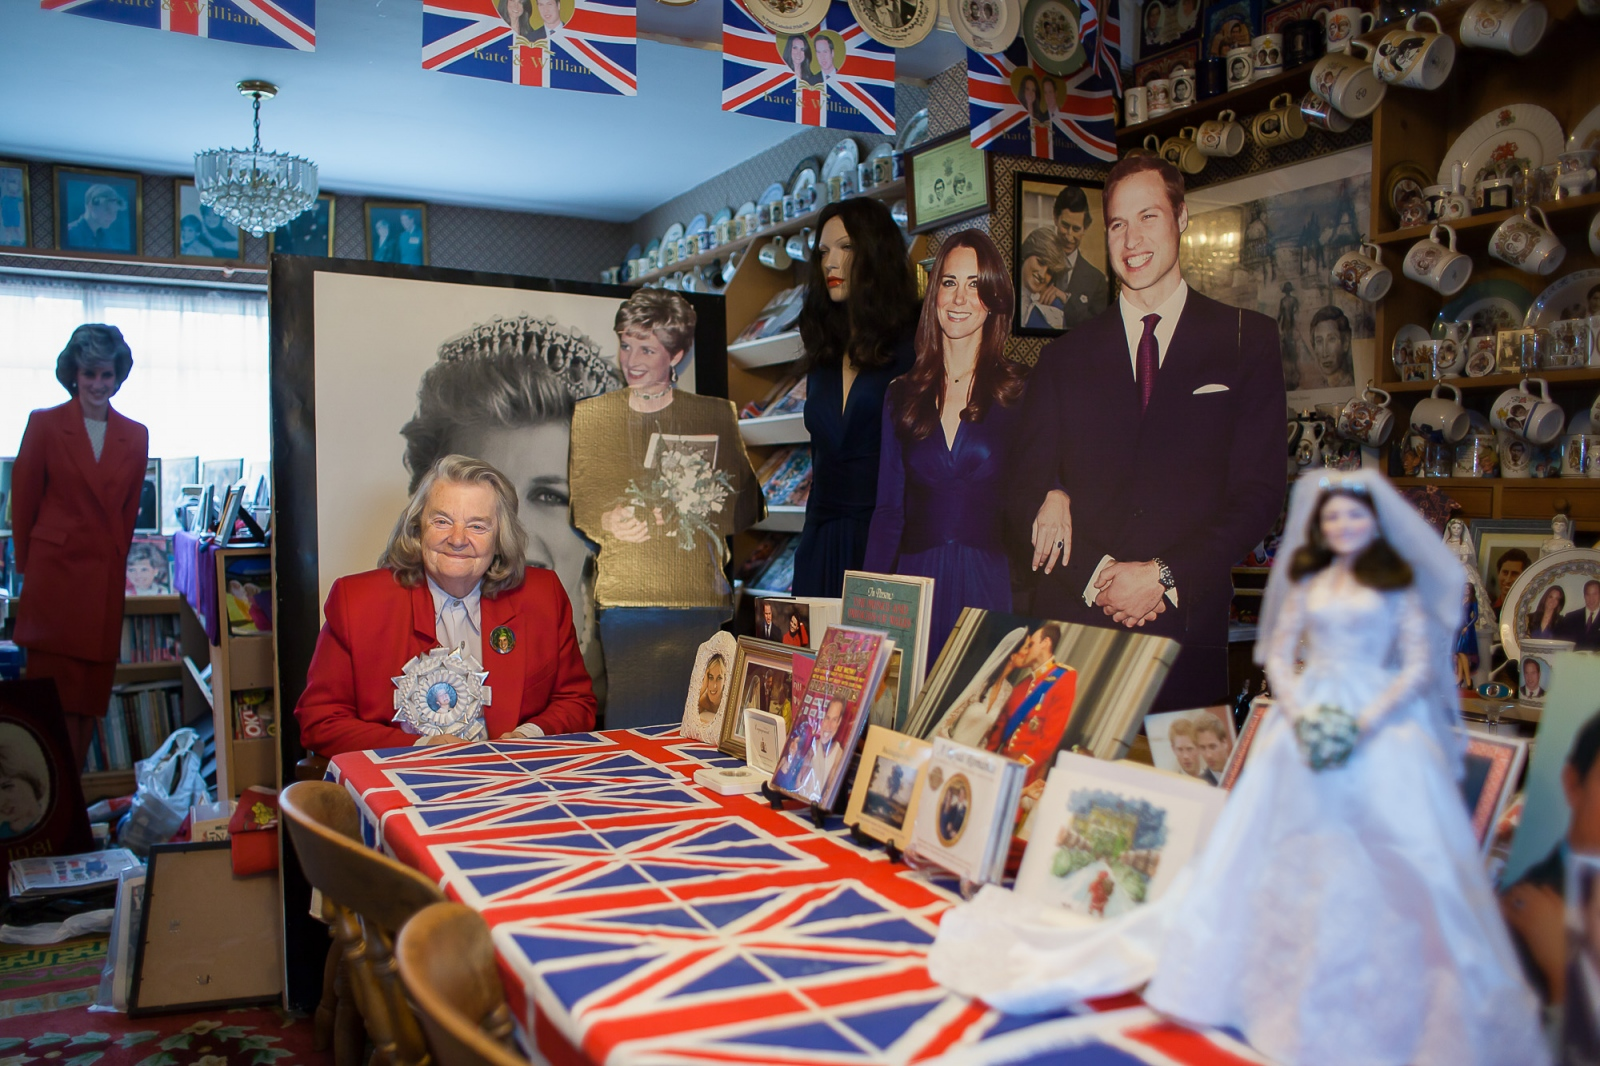 Wembley, UK, October 8, 2012: Mrs Margaret Tyler has collected about 10.000 items over the past 30 years, making her royal memorabilia collection the biggest in England.